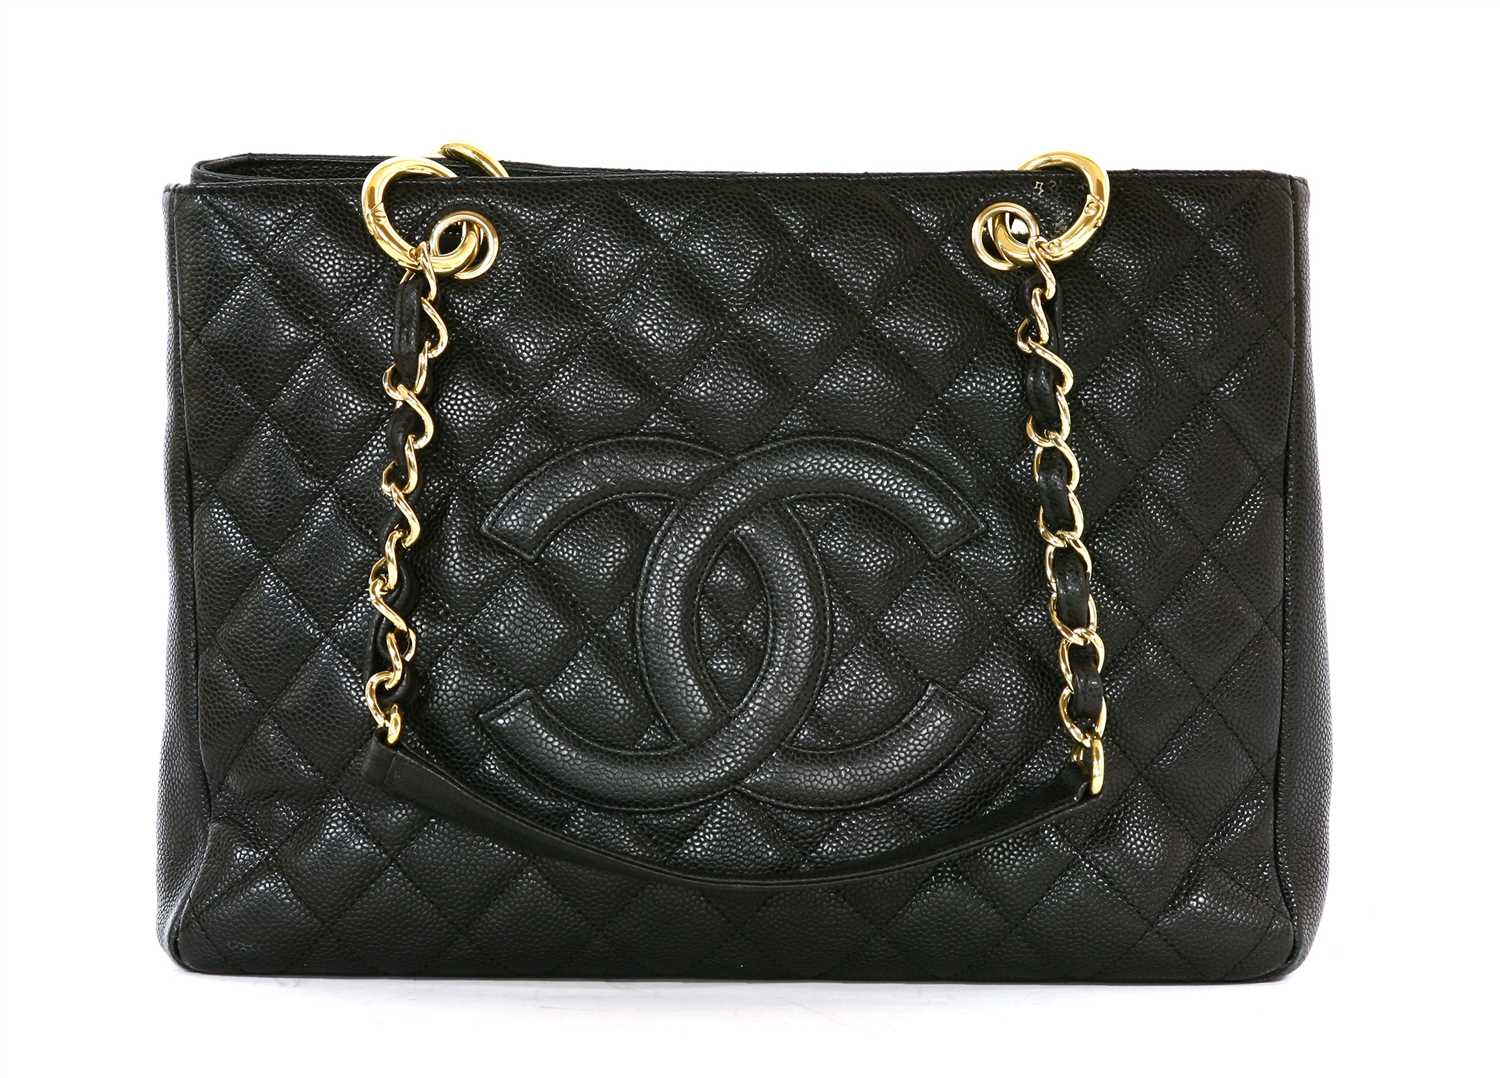 a0ac4caf8520 Lot 740-A Chanel black Caviar Grand shopping tote GST